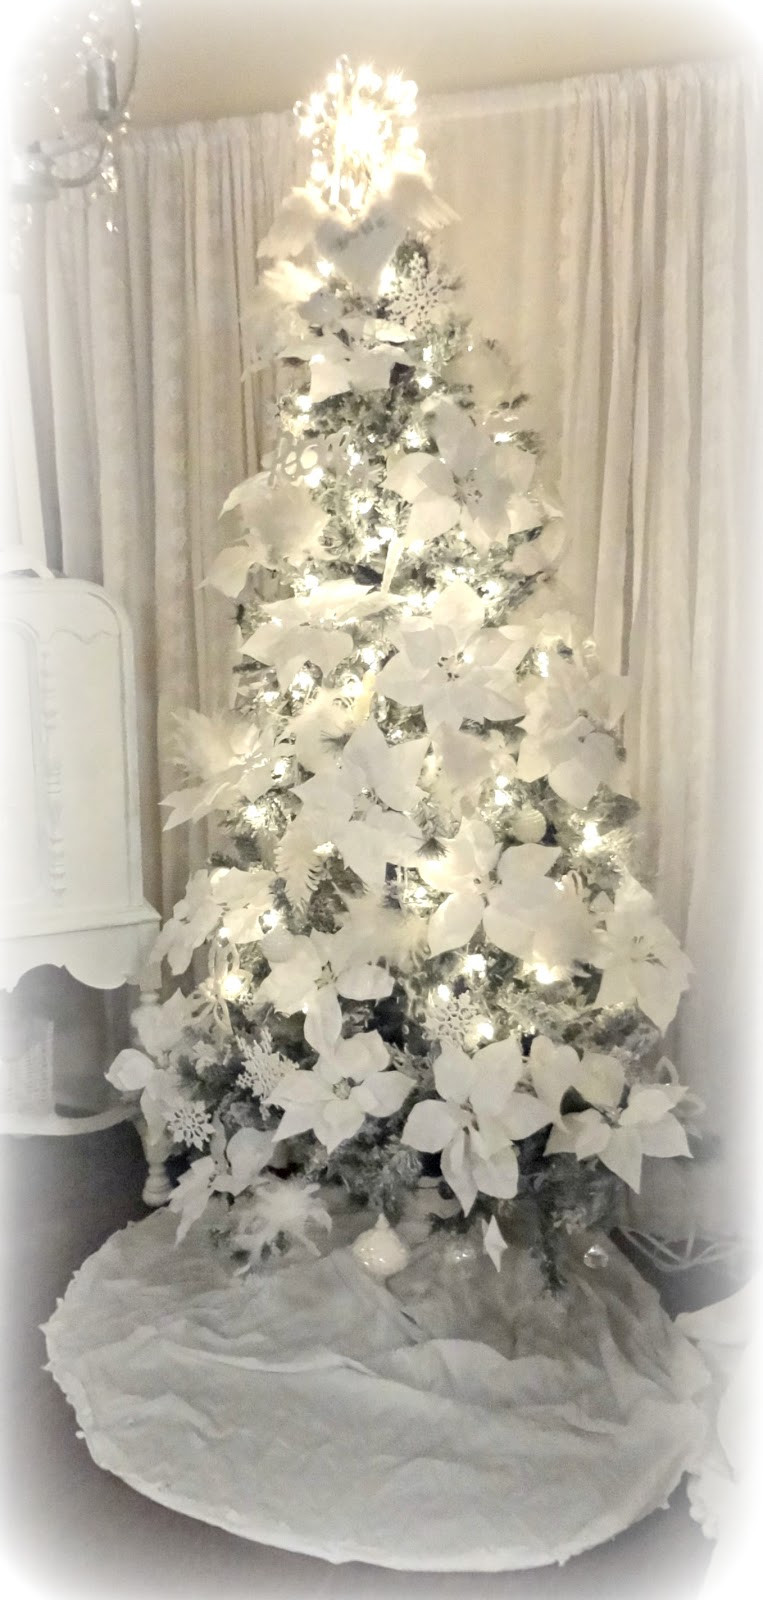 Best ideas about Shabby Chic Christmas . Save or Pin Not So Shabby Shabby Chic Christmas Tree Oh Christmas Tree Now.